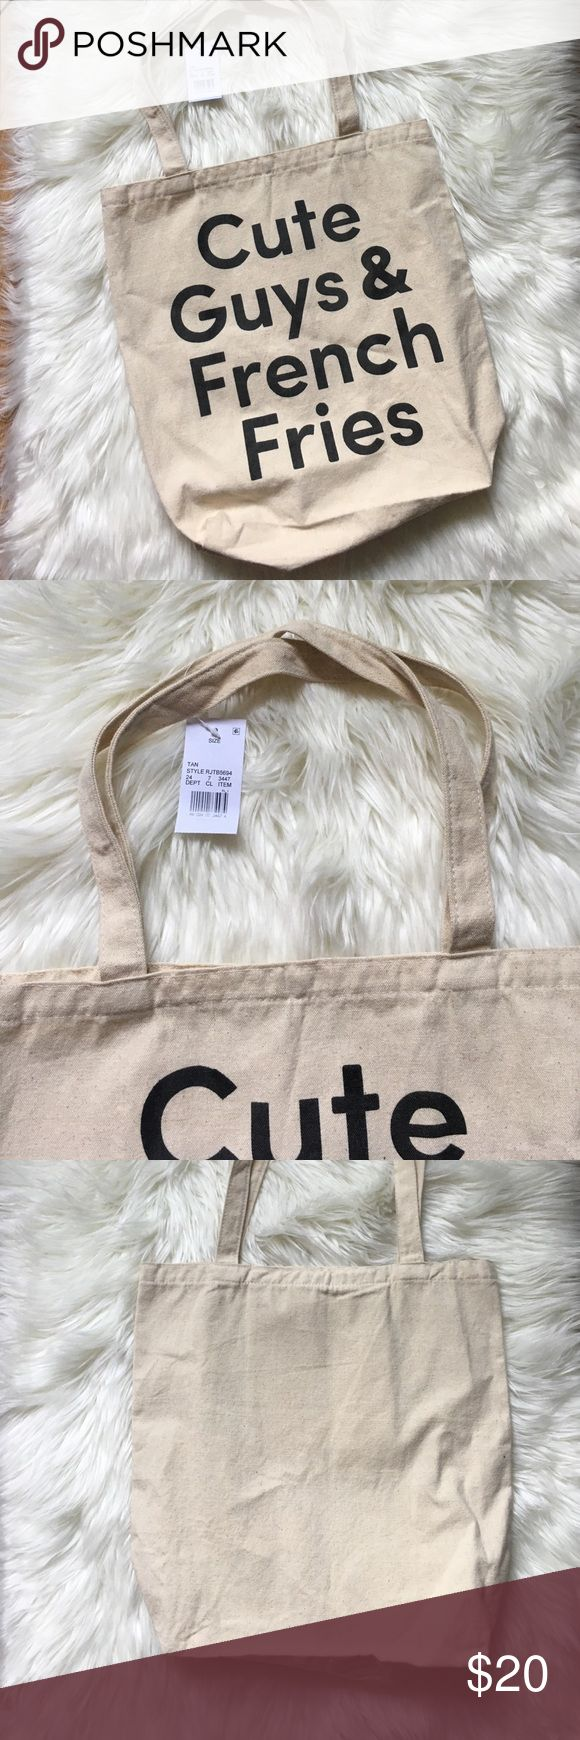 NWT Urban Outfitters Cute Guys Canvas Tote Bag Brand new with tags attached and no flaws at all. 13 inches long 16 inches high. NO TRADES PLEASE Urban Outfitters Bags Totes